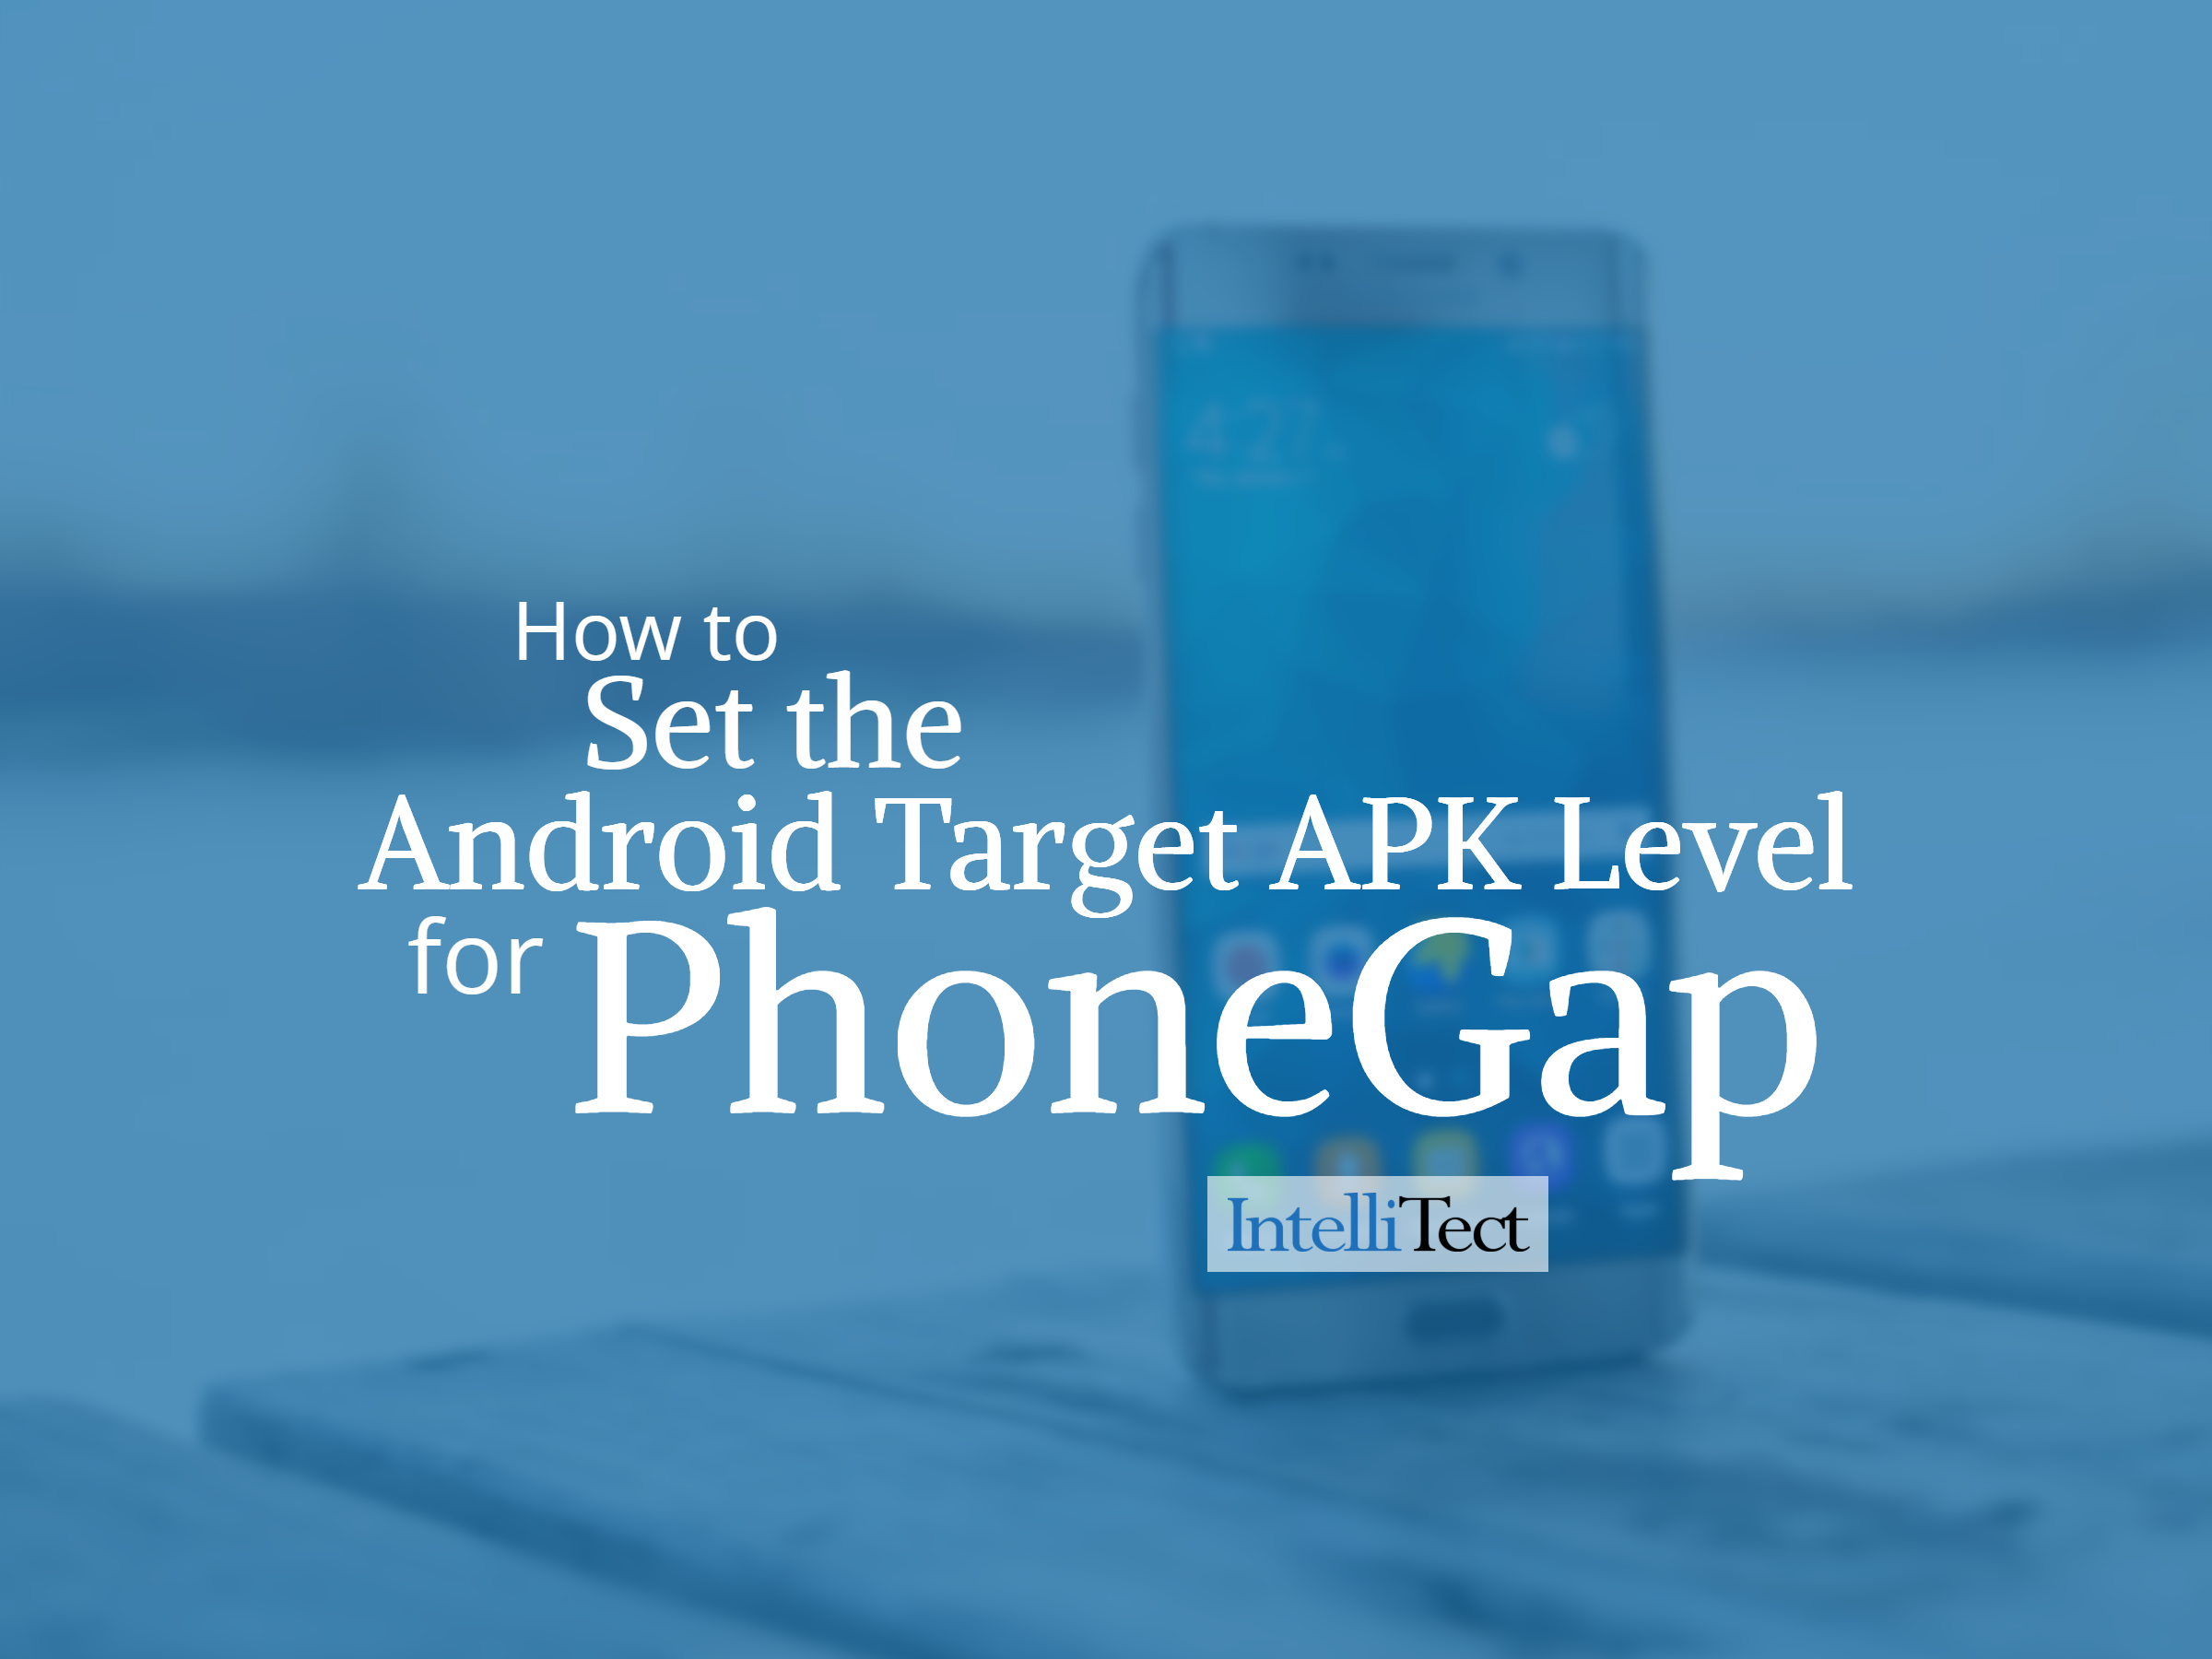 How to Set the Android Target APK Level for PhoneGap